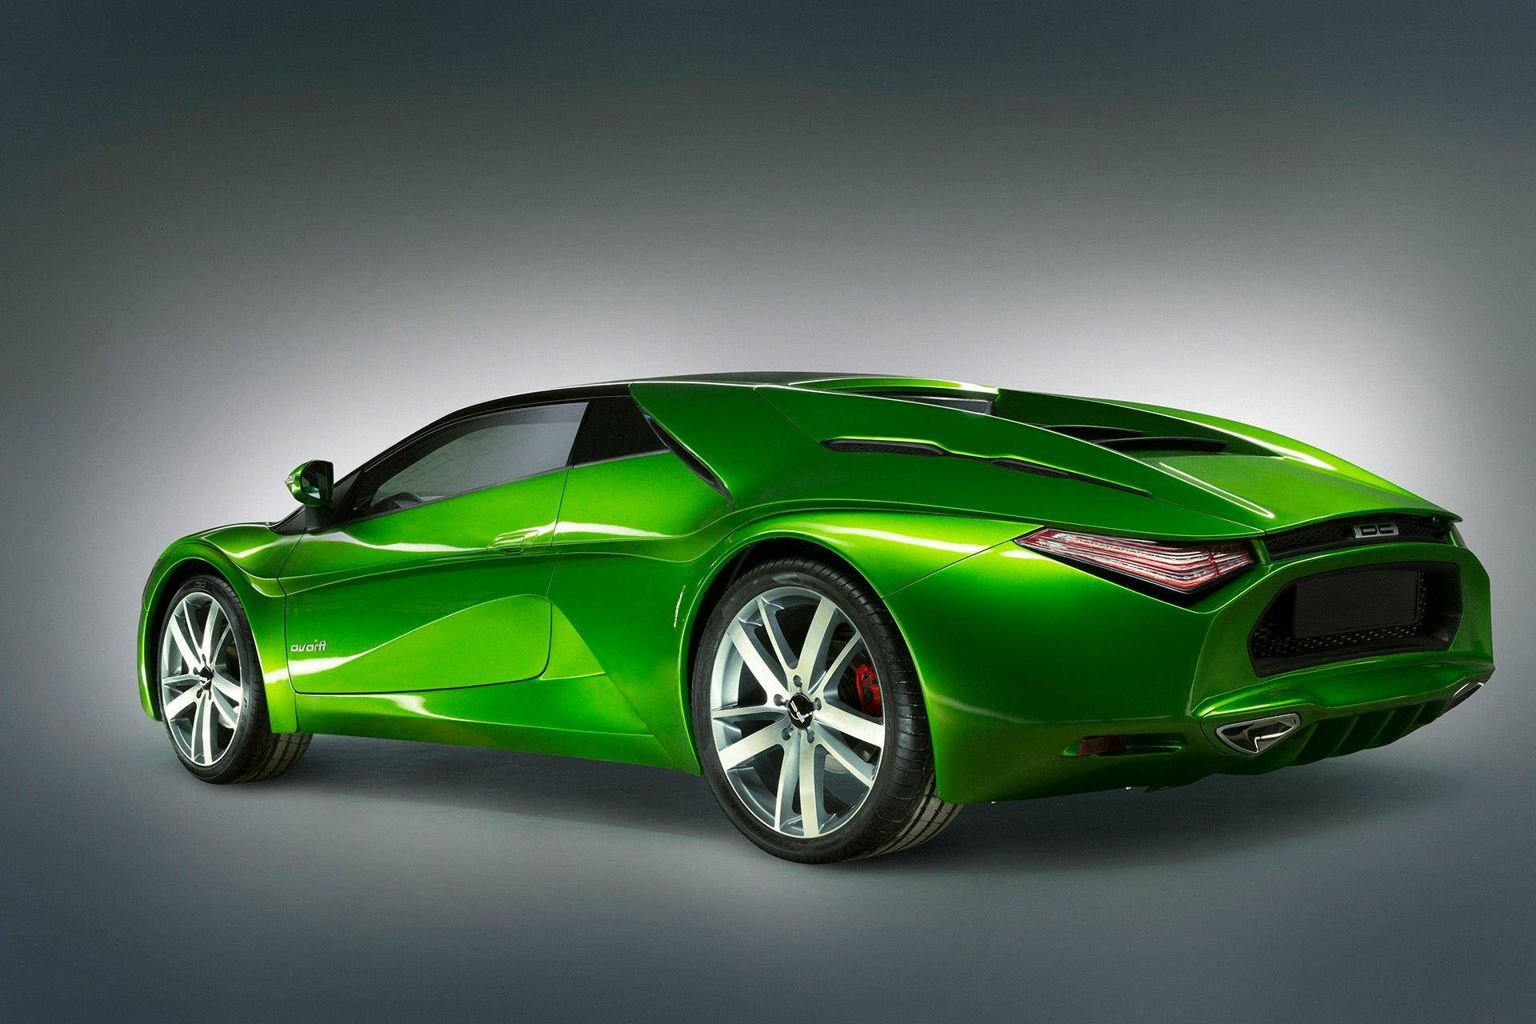 dc design avanti 2015 price mileage reviews designers in dc DC-Avanti-supercar